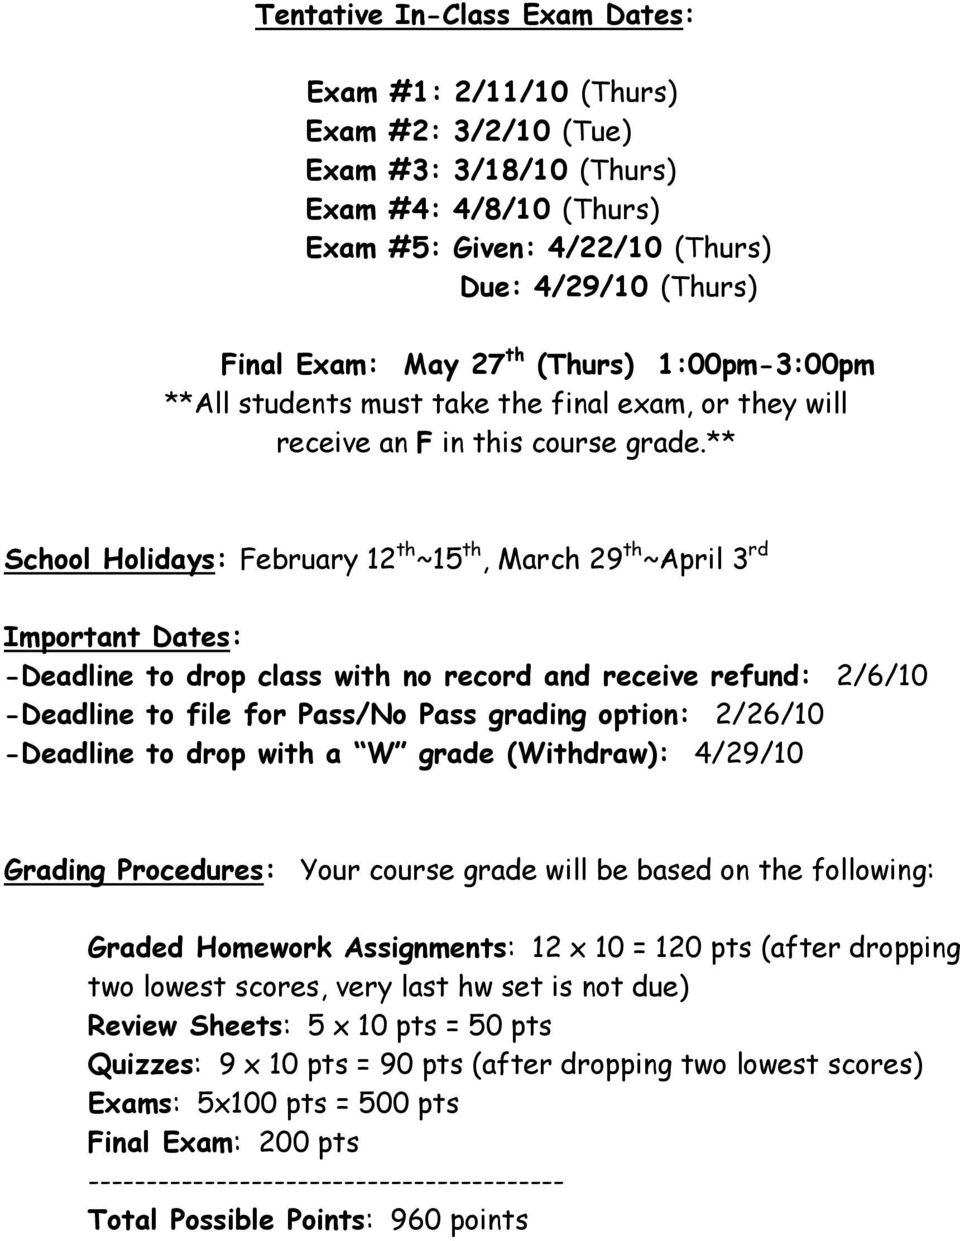 ** School Holidays: February 12 th ~15 th, March 29 th ~April 3 rd Important Dates: -Deadline to drop class with no record and receive refund: 2/6/10 -Deadline to file for Pass/No Pass grading